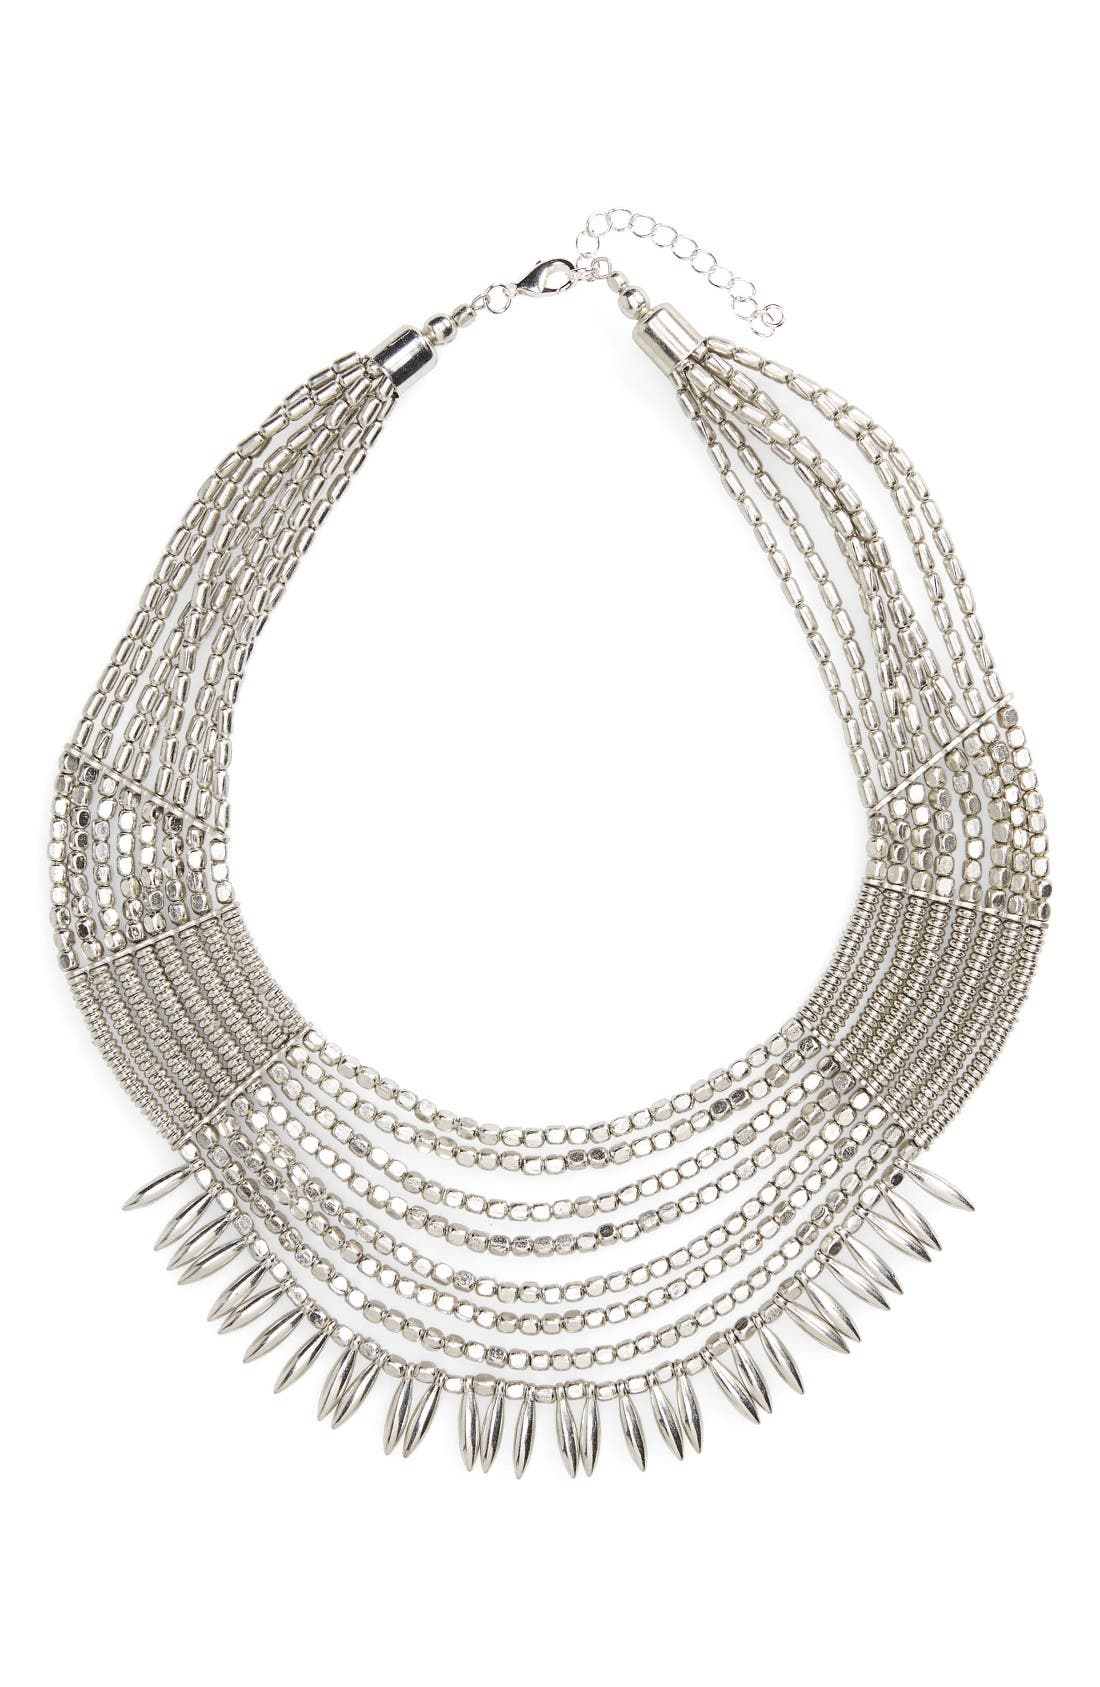 Alternate Image 1 Selected - Panacea Beaded Collar Statement Necklace